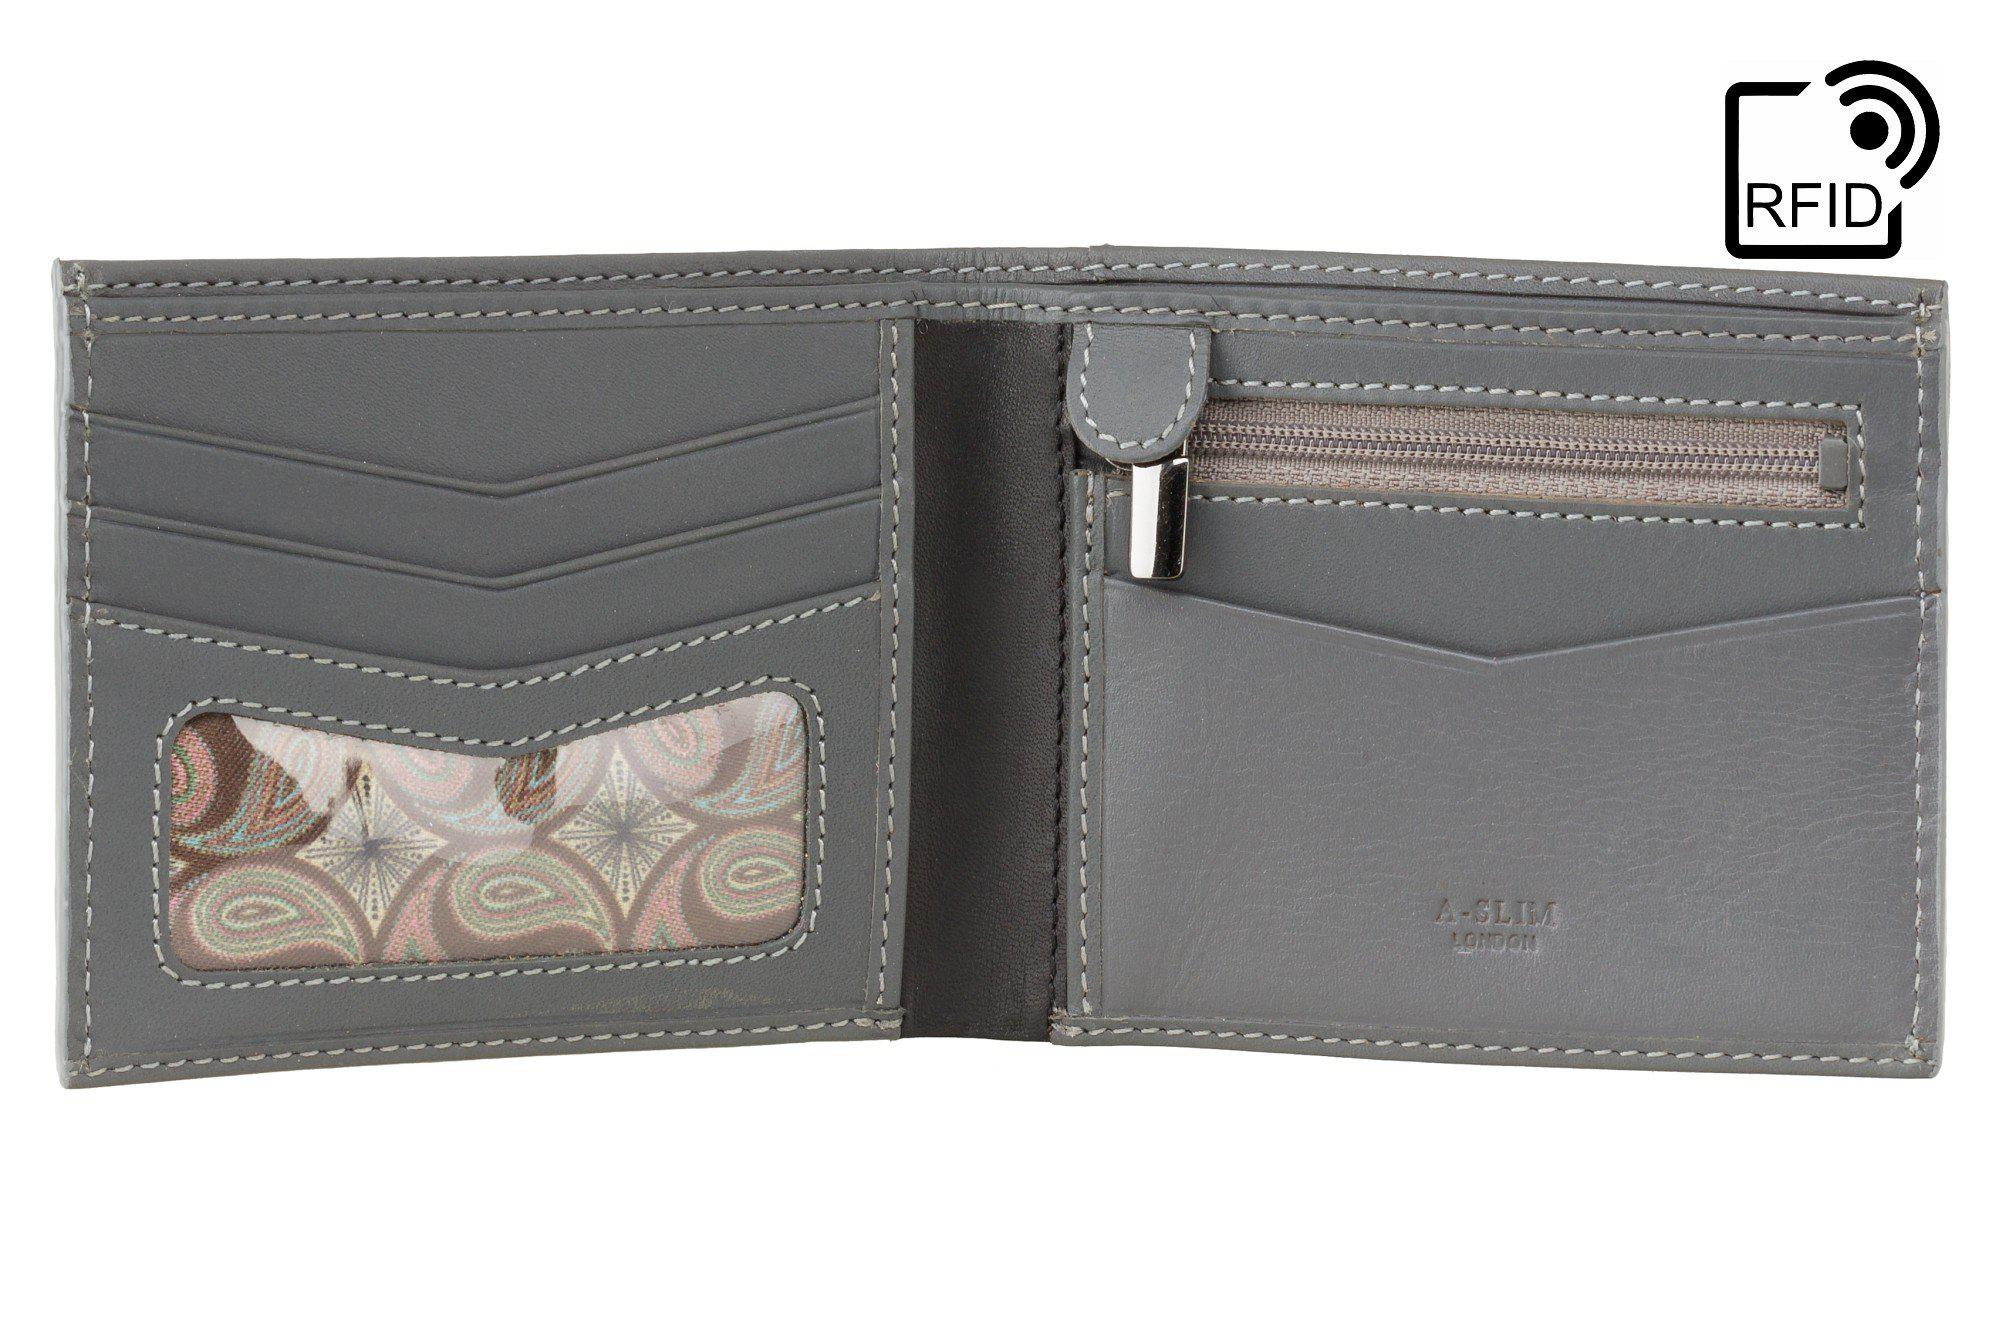 Wallet - Yugen | Cash, Coin, Card & ID Leather Wallet